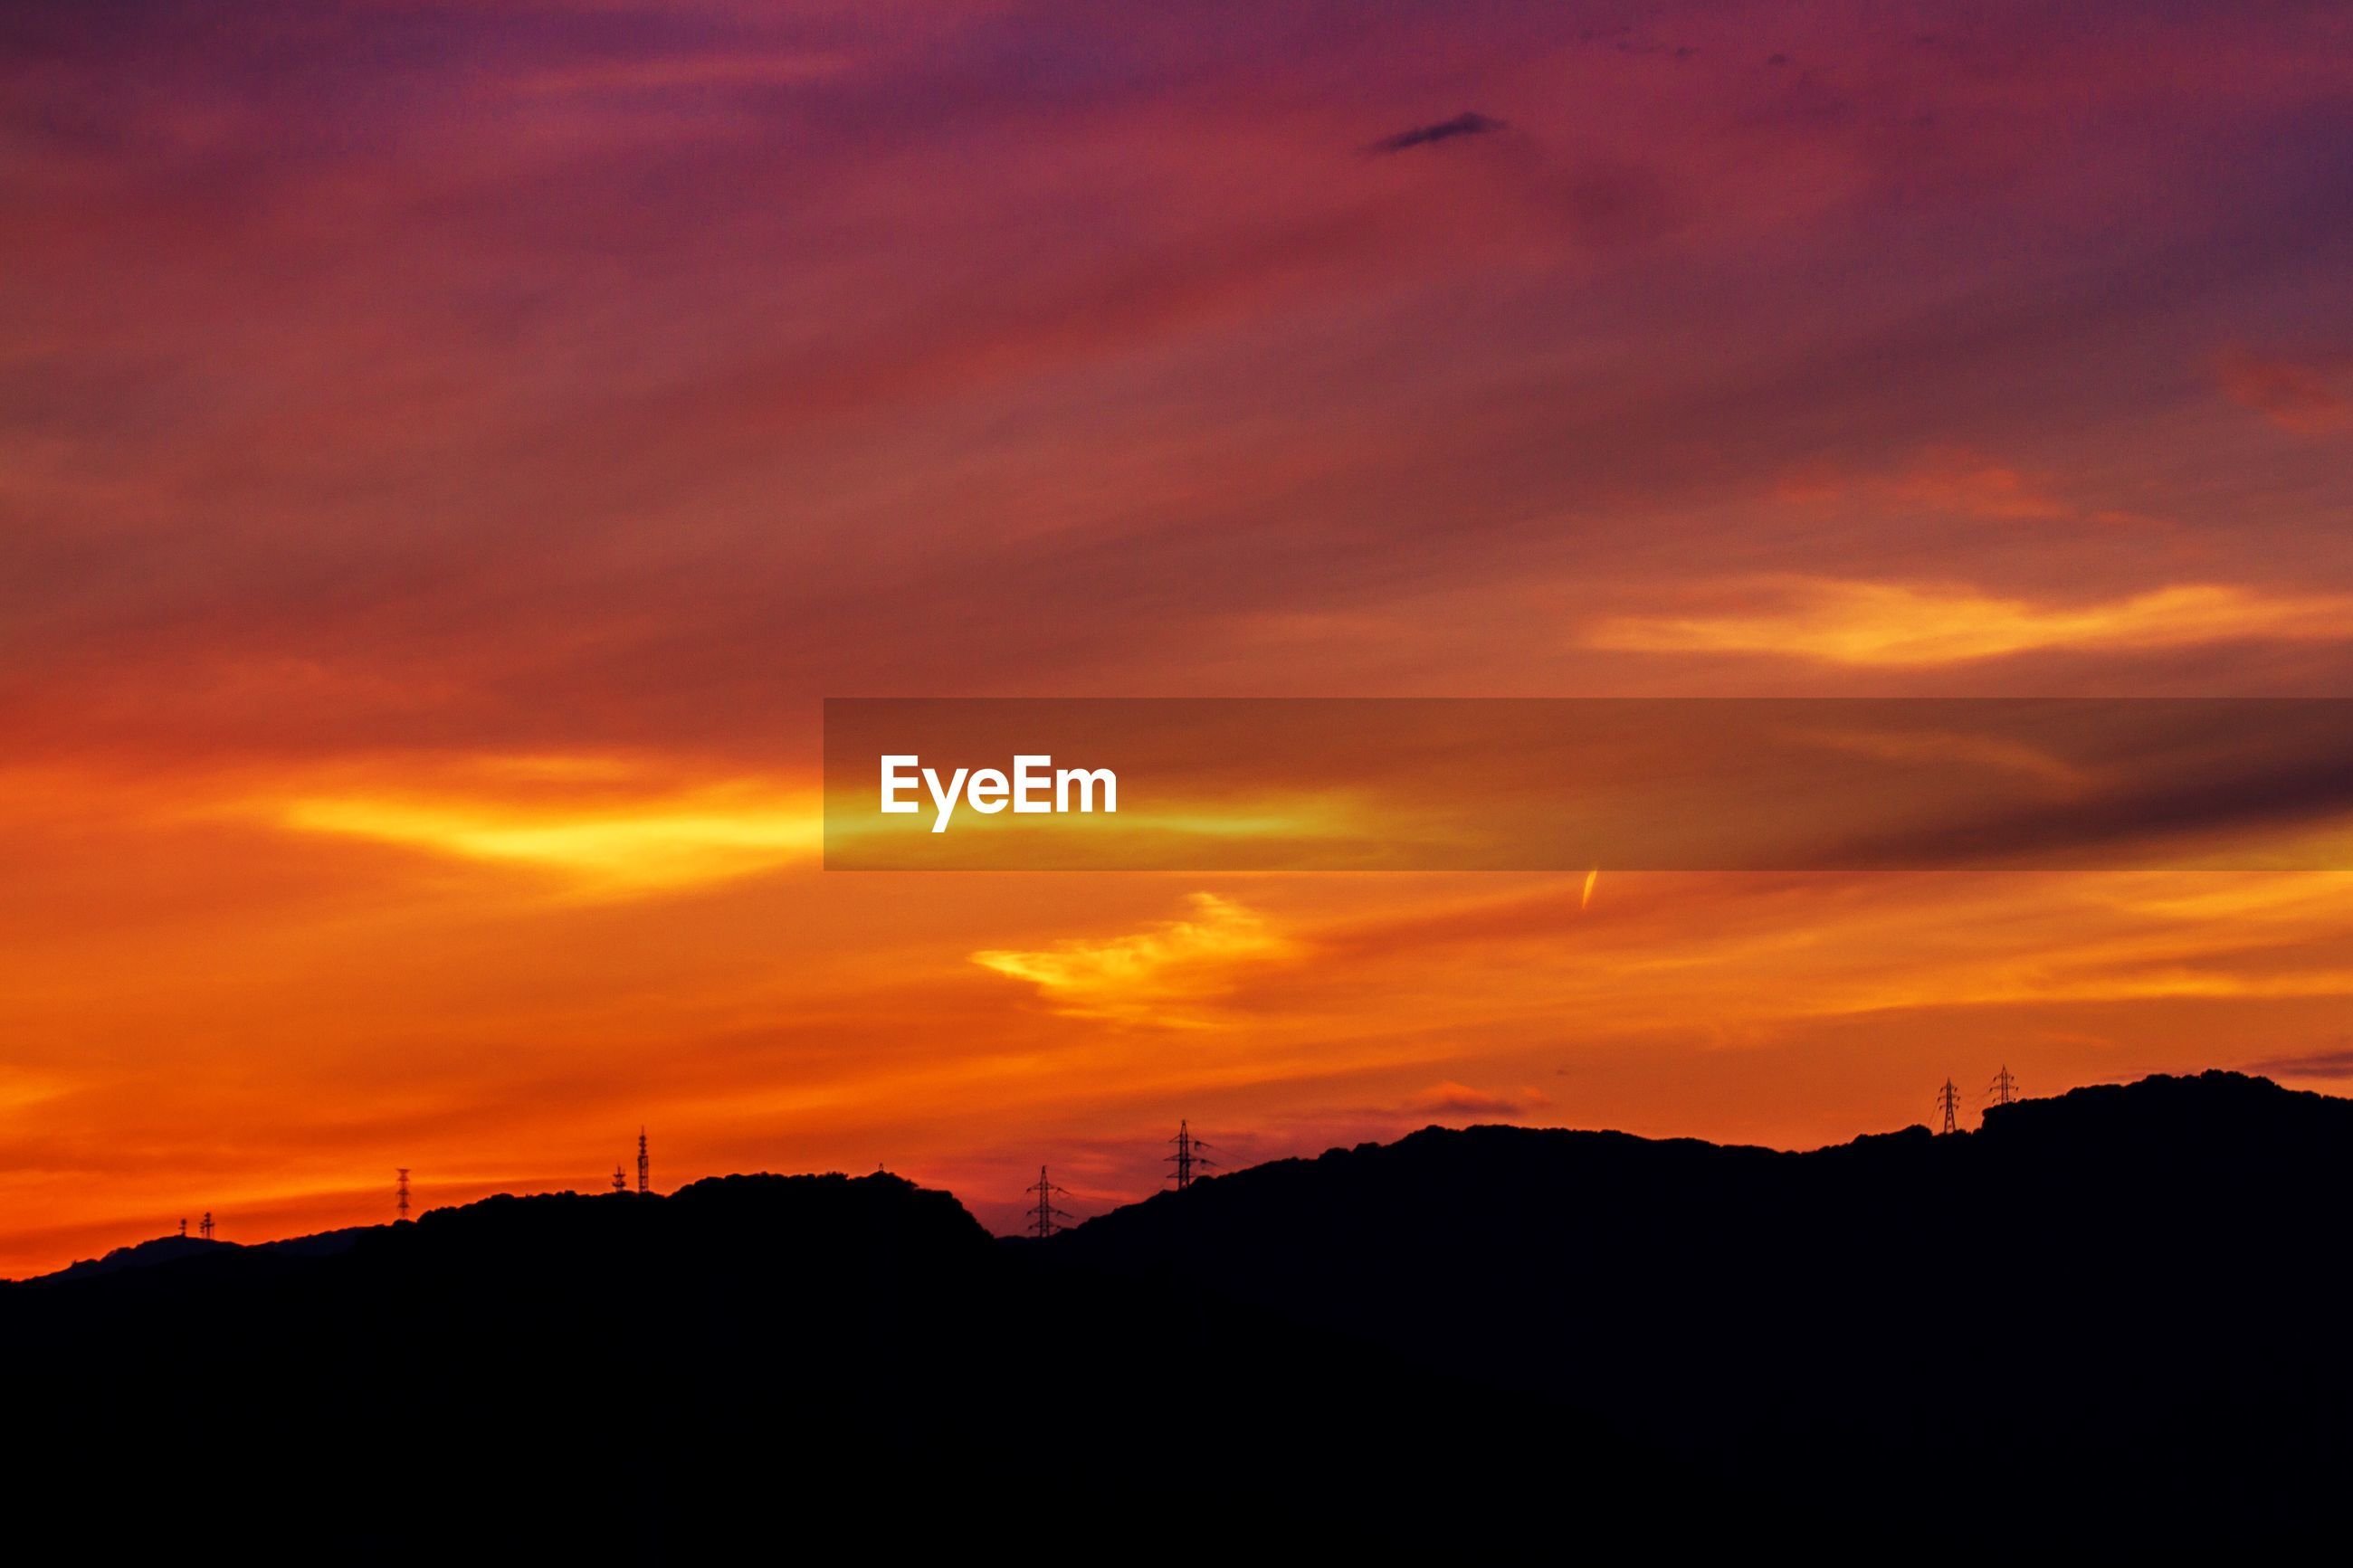 Silhouettes of electricity pylons at scenic sunset